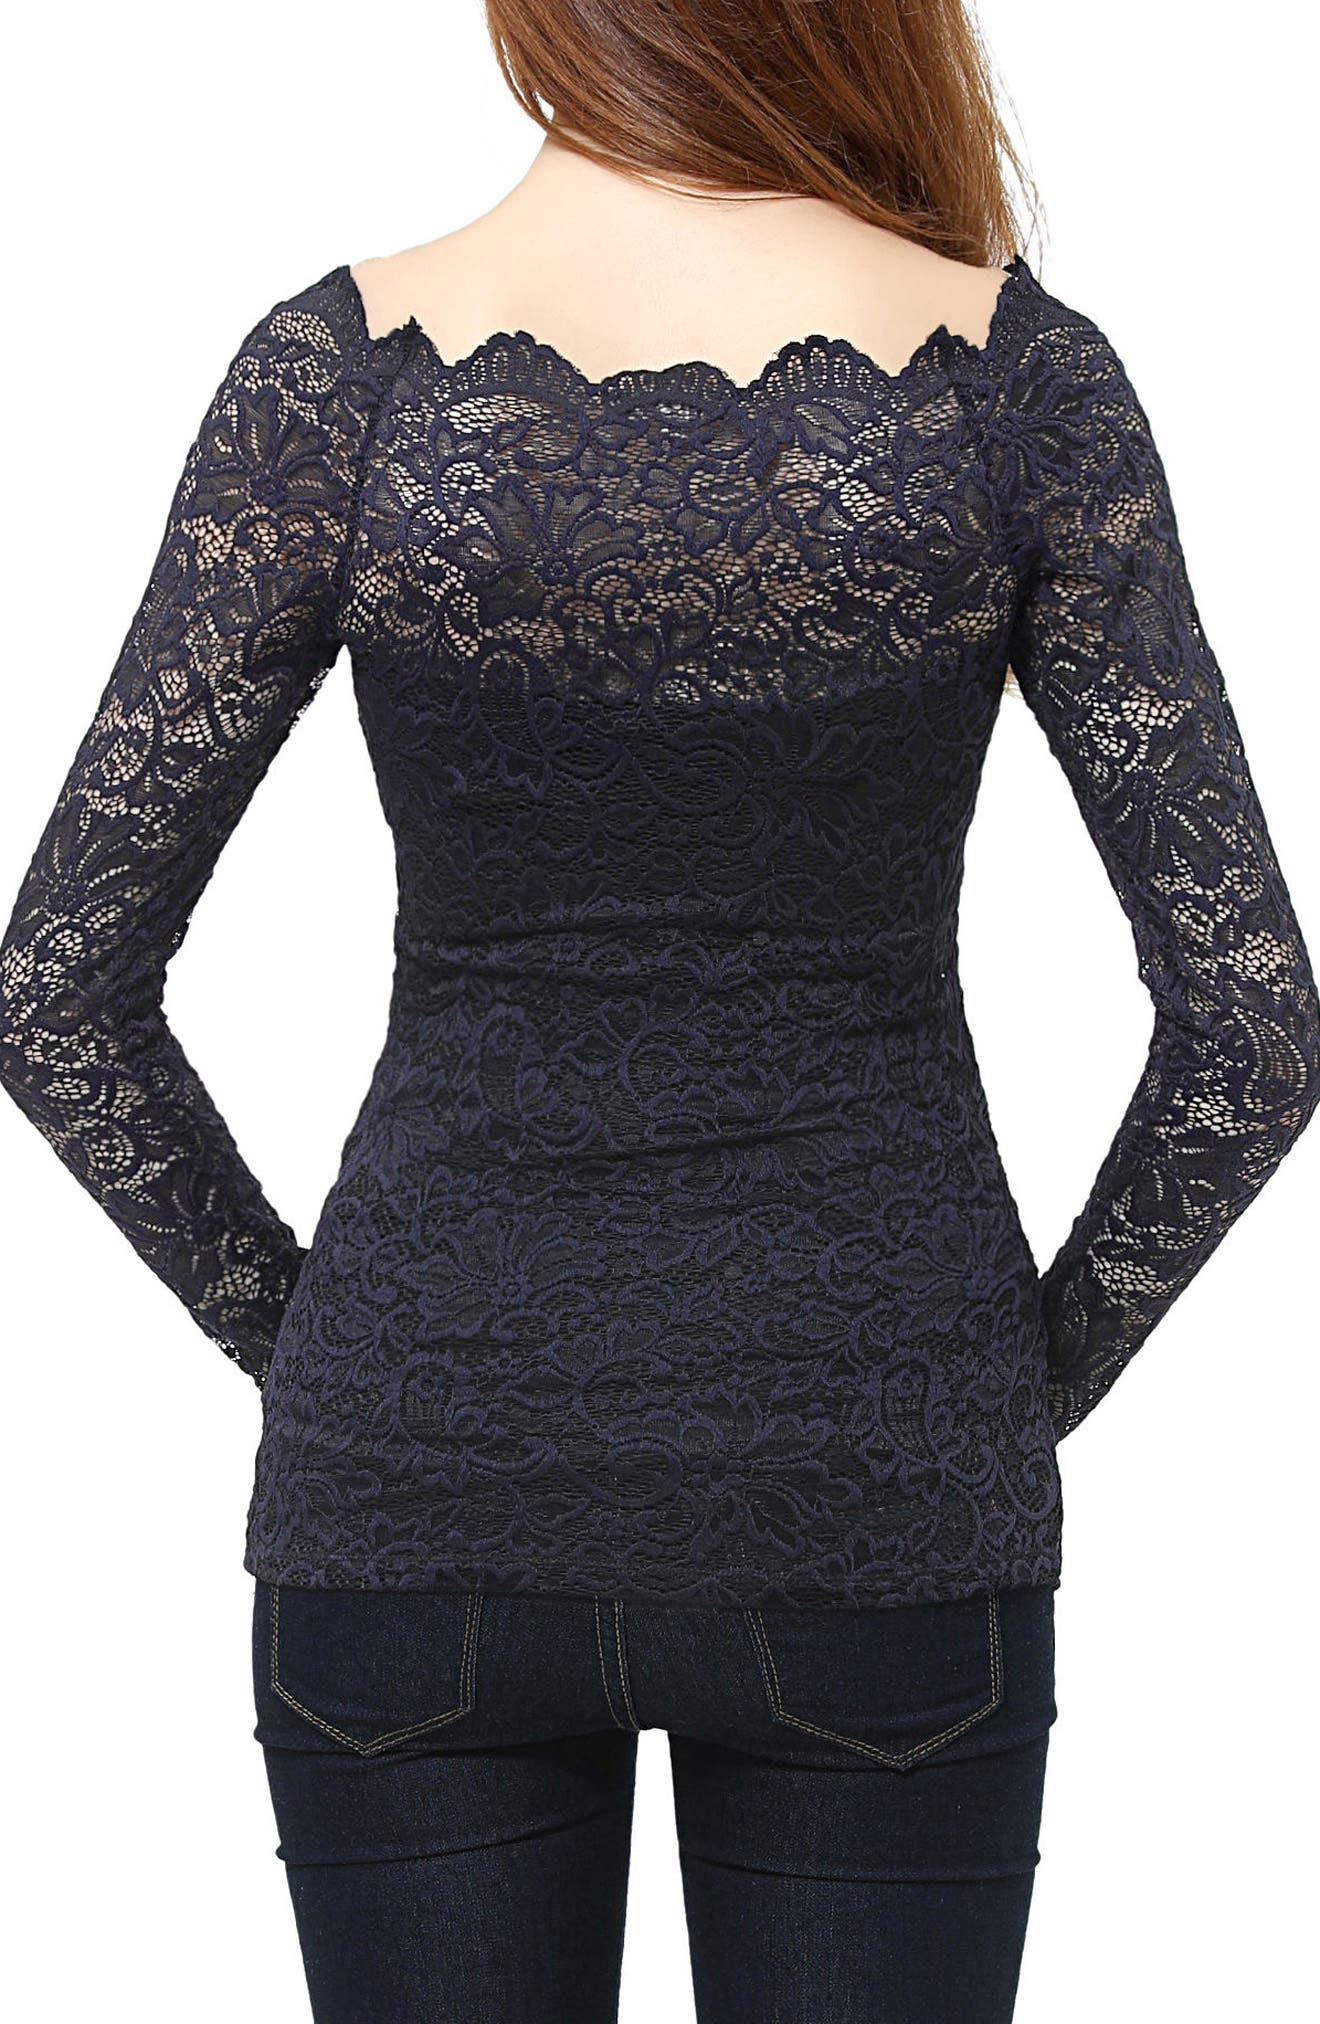 Lace Overlay Maternity Blouse,                             Alternate thumbnail 2, color,                             Navy